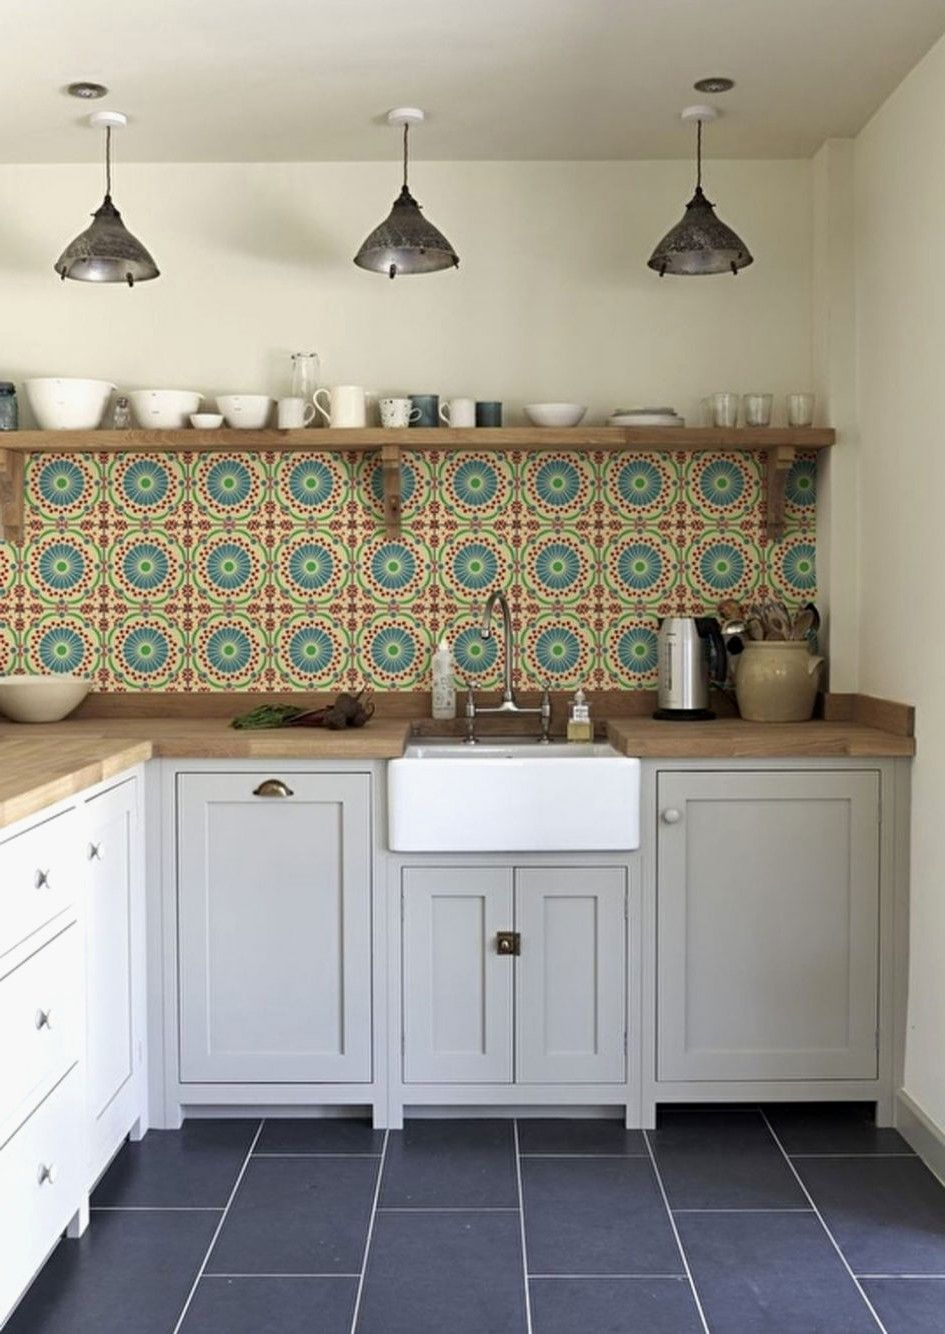 Design Simple Modern Kitchen Retro Tiles Large Wall Fresh